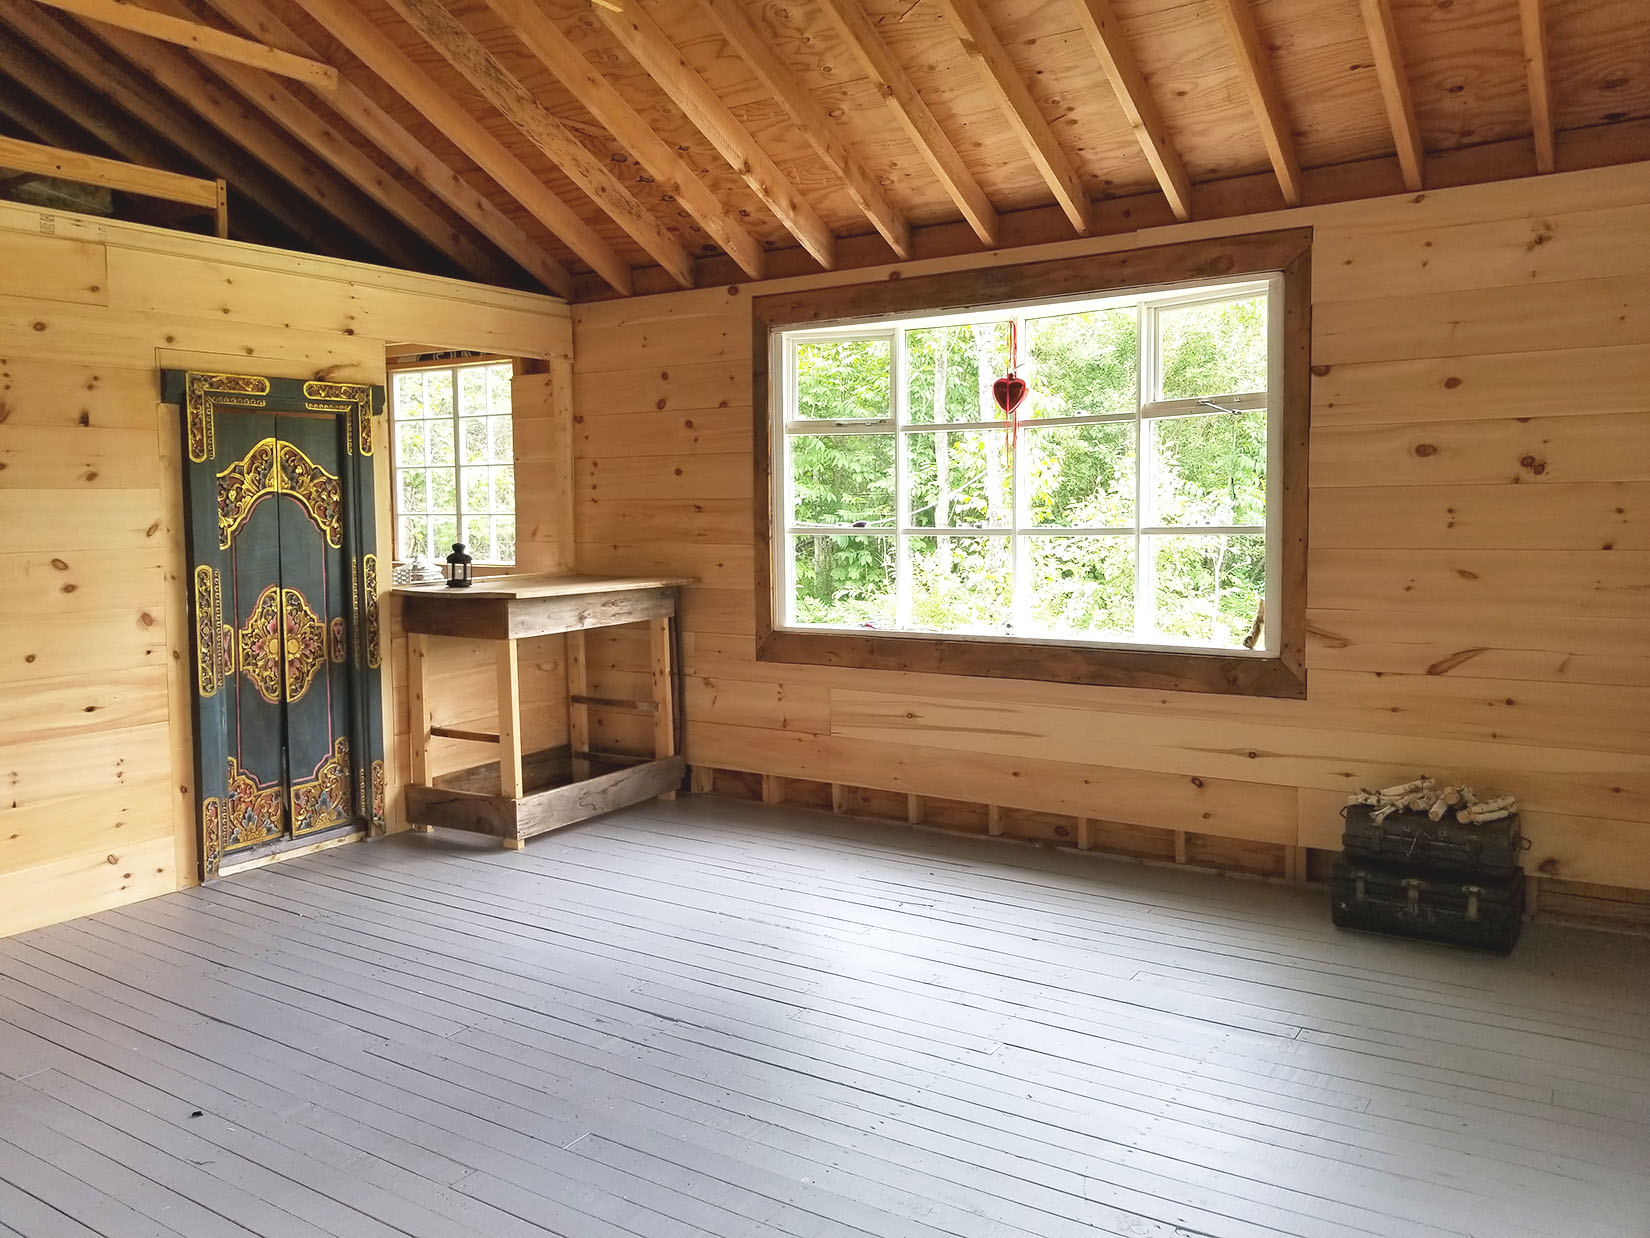 The practice room at Tourmaline Center gathering cottage.